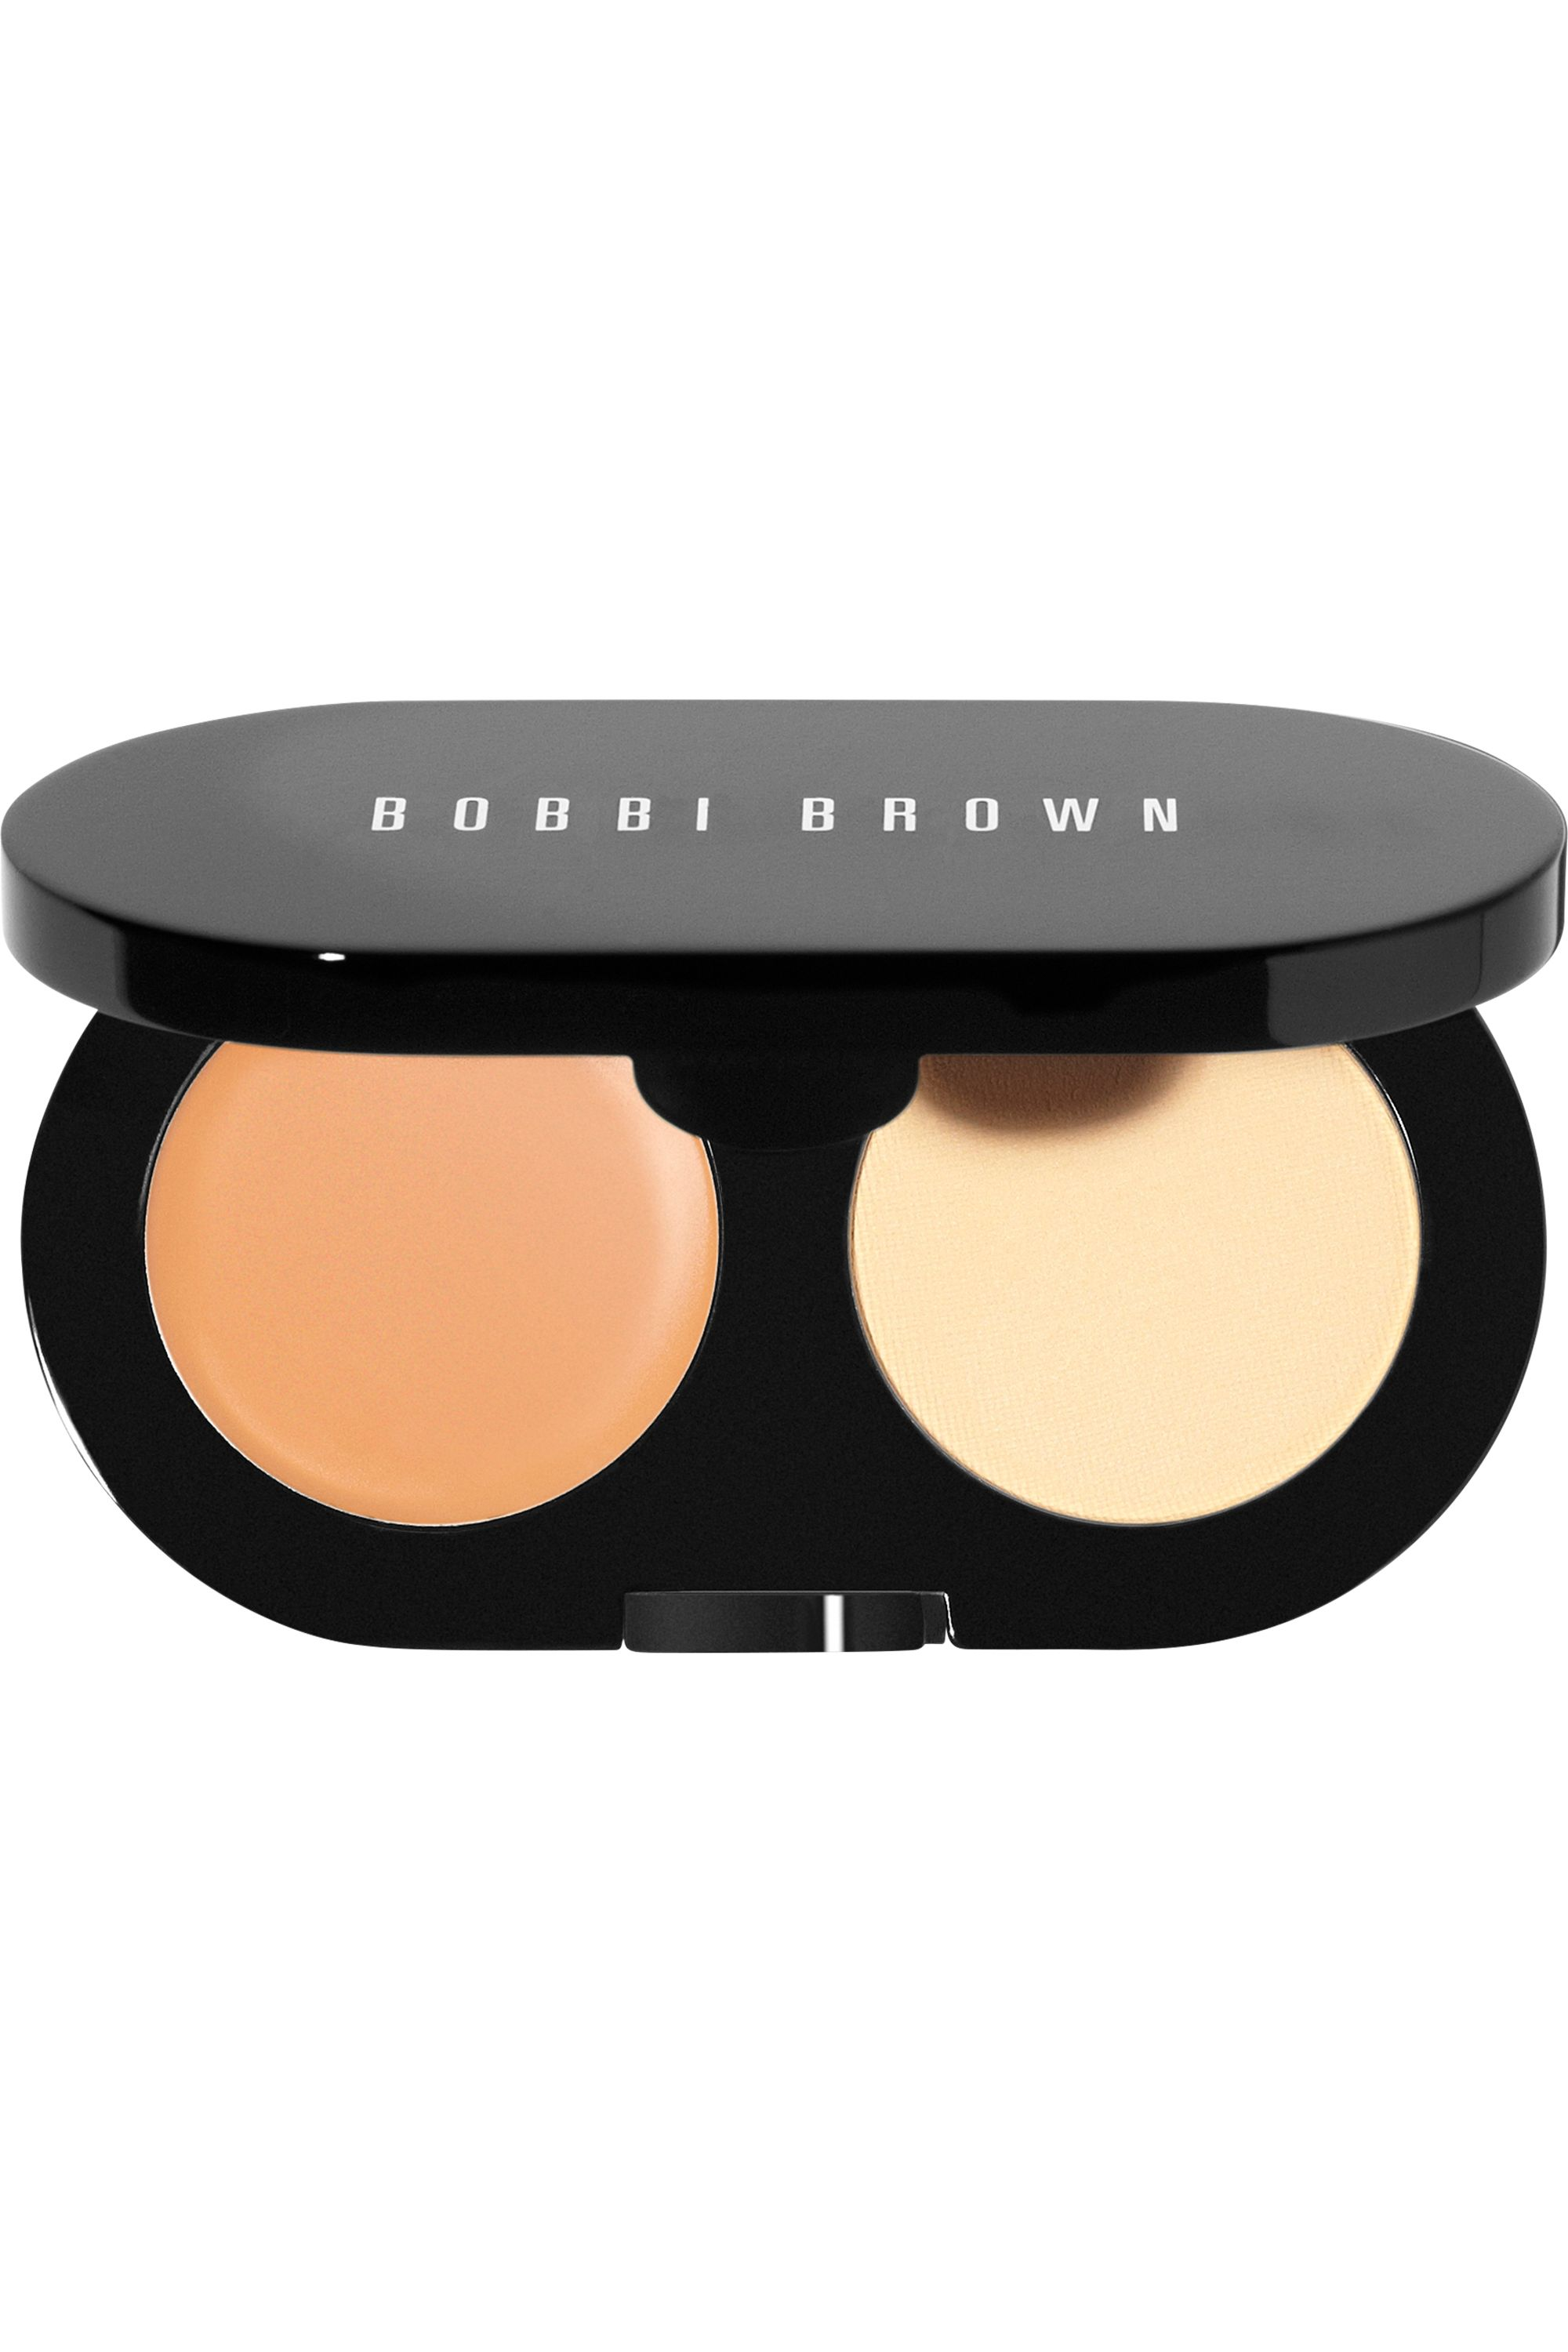 Blissim : Bobbi Brown - Kit anti-cernes Creamy Concealer Kit - Warm Natural